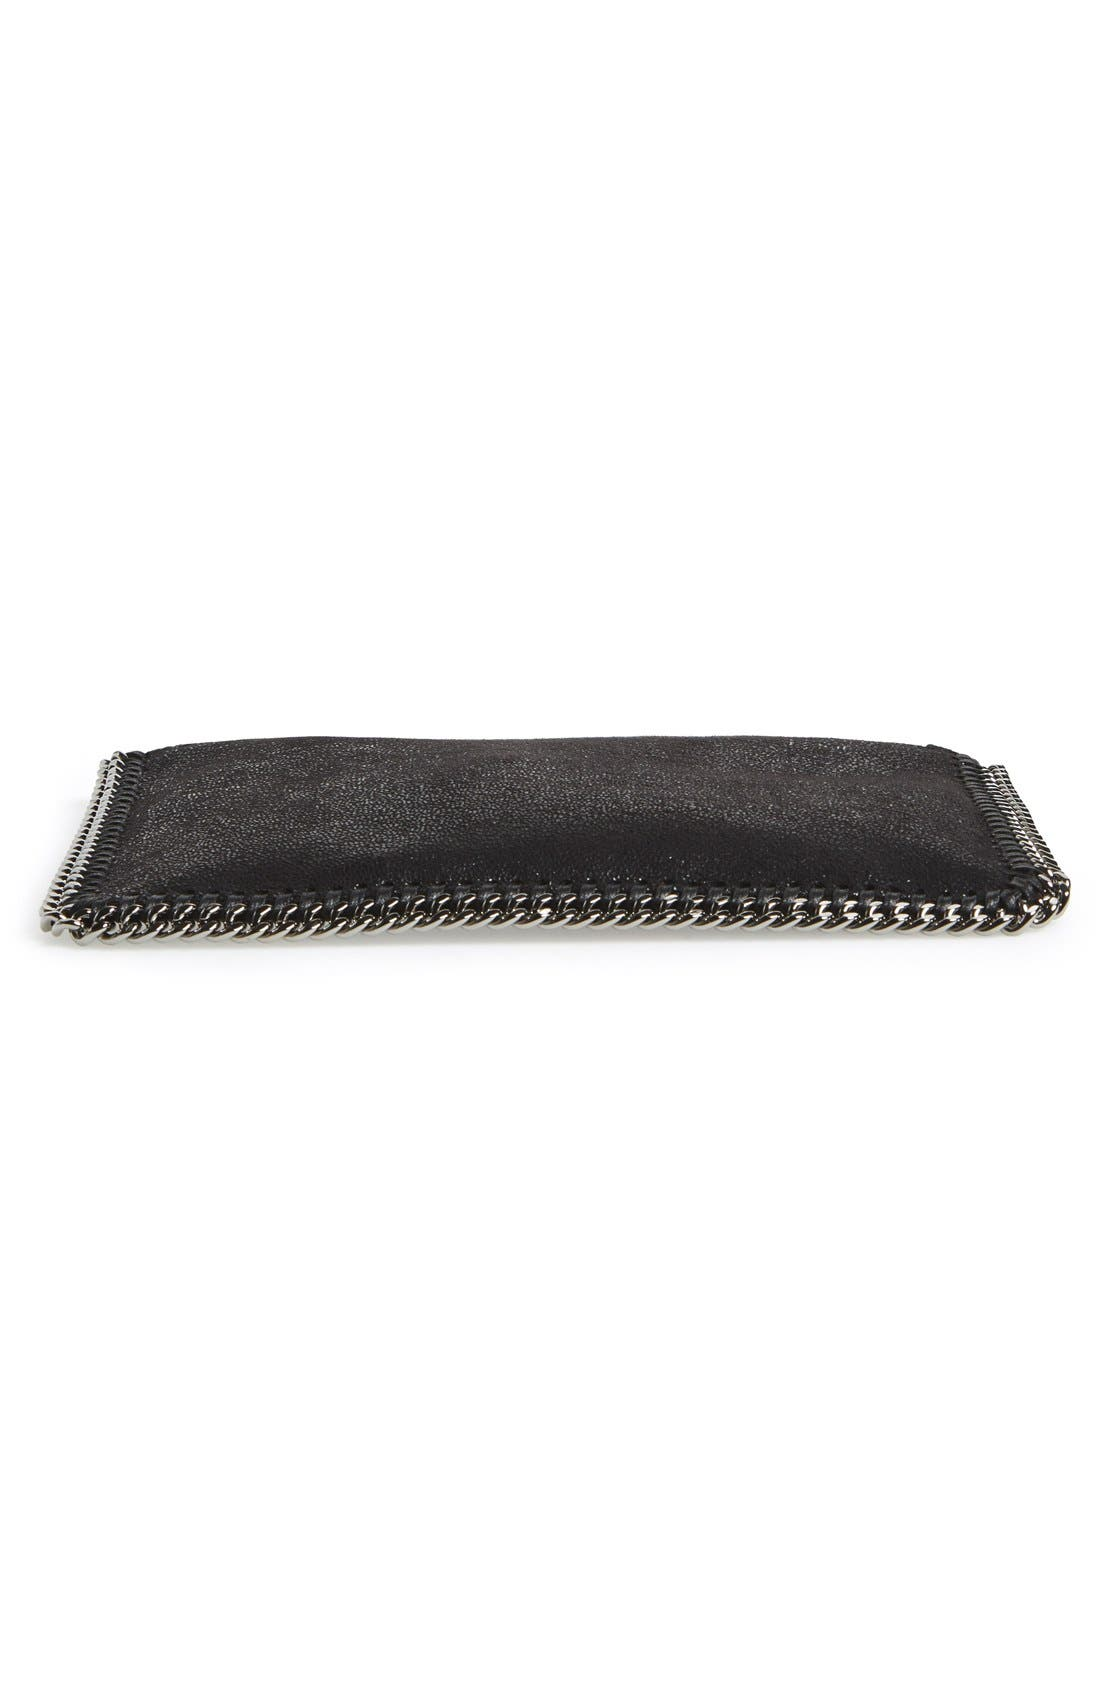 'Falabella' Faux Leather Pouch with Convertible Strap,                             Alternate thumbnail 6, color,                             002